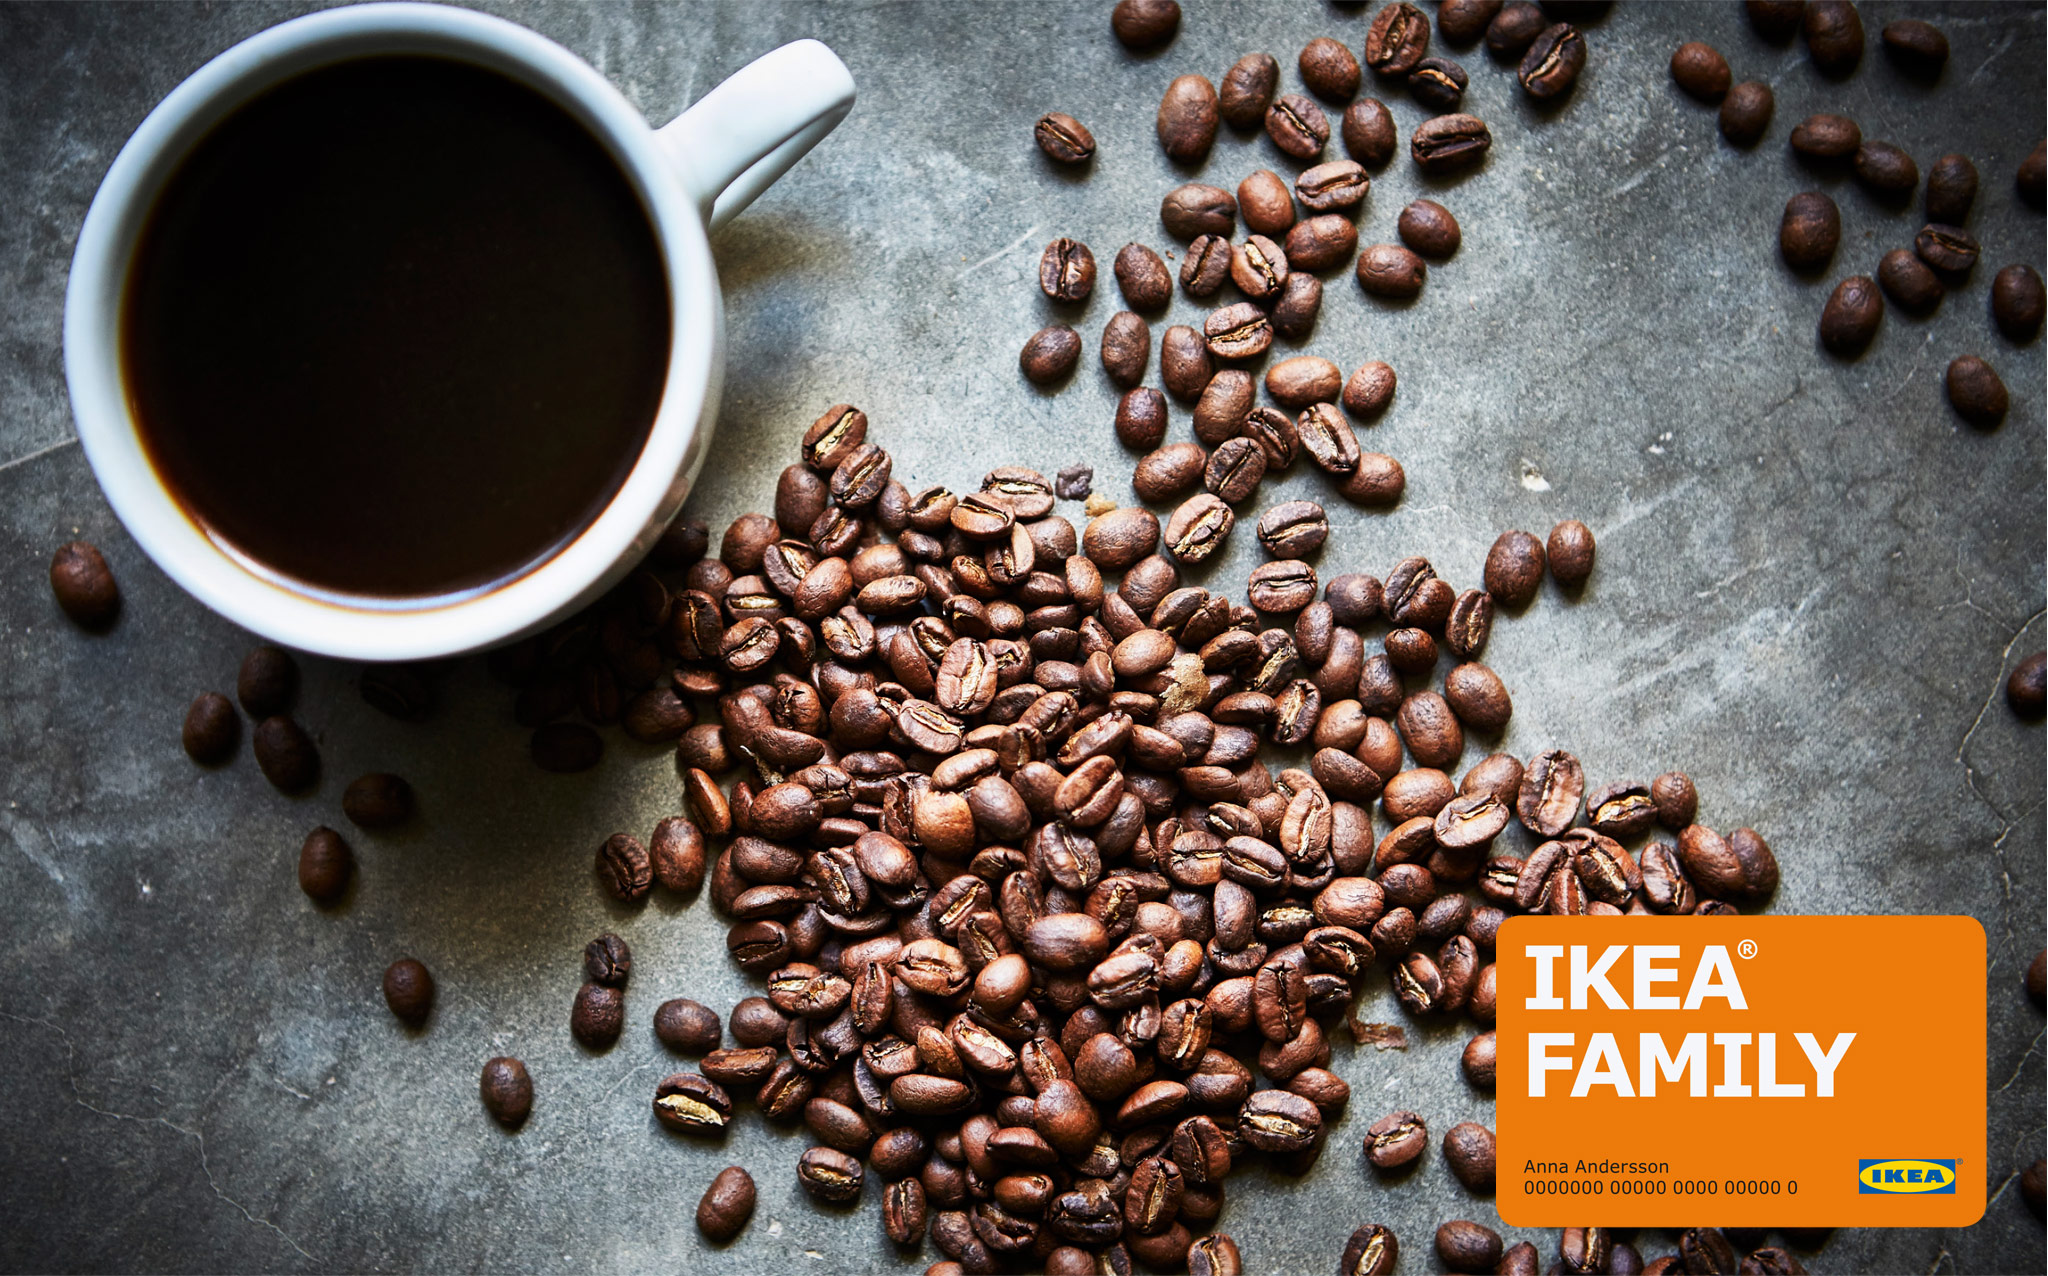 With your IKEA FAMILY card our flavourful, UTZ certified and organic coffee is FREE in the IKEA Restaurant.